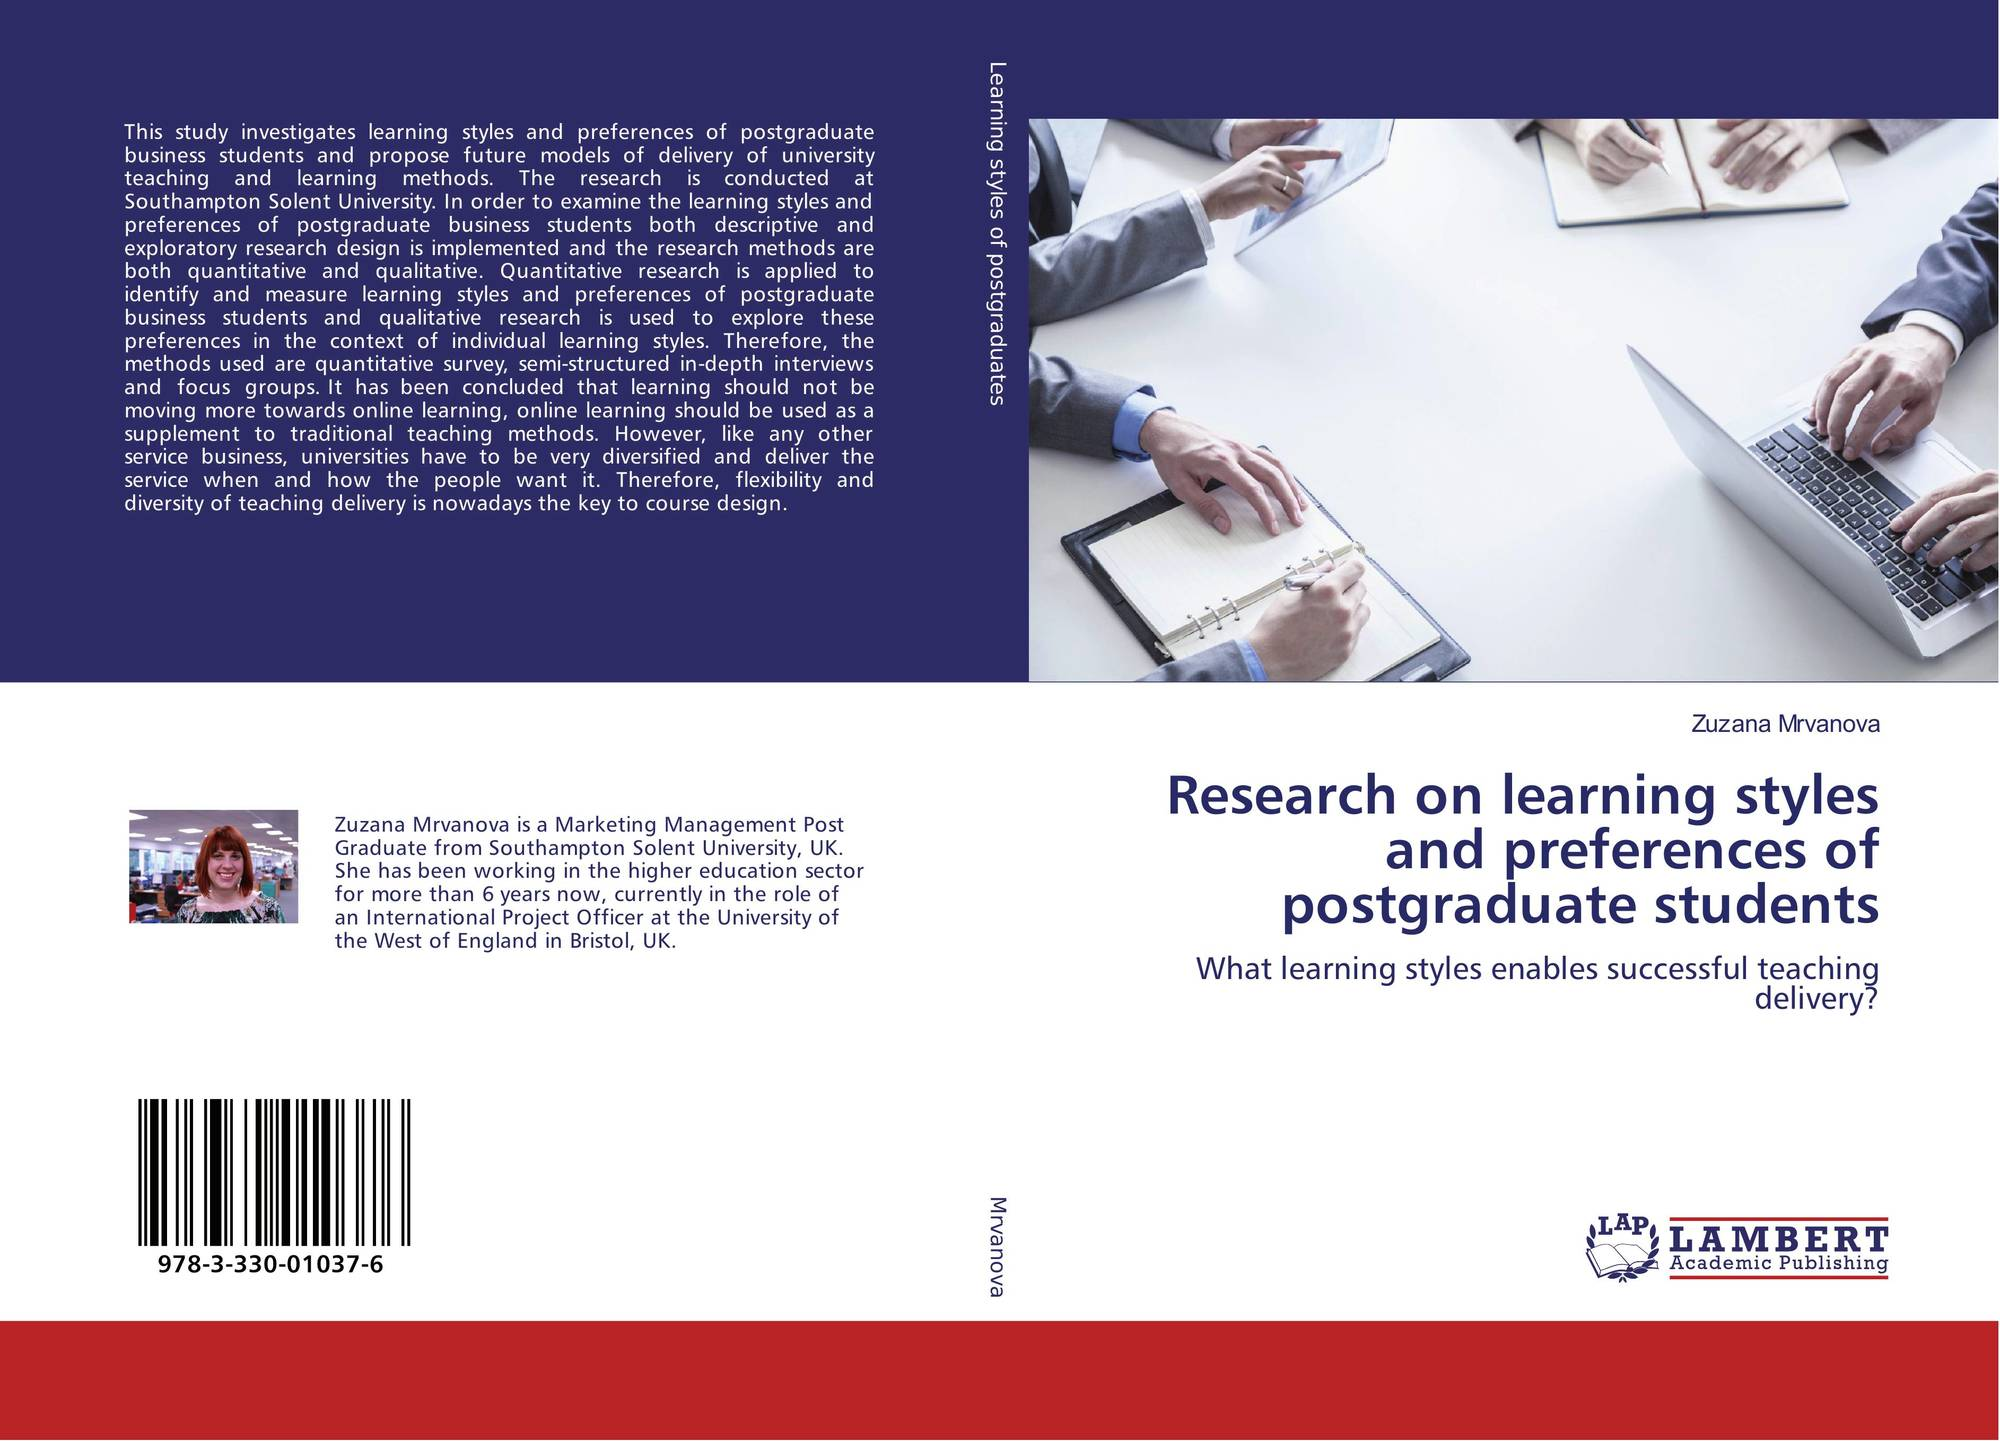 learning styles and the most preferred teaching methodology among sophomore nursing students Learning styles and the most preferred teaching methodology among sophomore nursing students communication and collaboration strategies for people with different learning styles and personalities the effect of course selection and course experience on students' learning style preference.